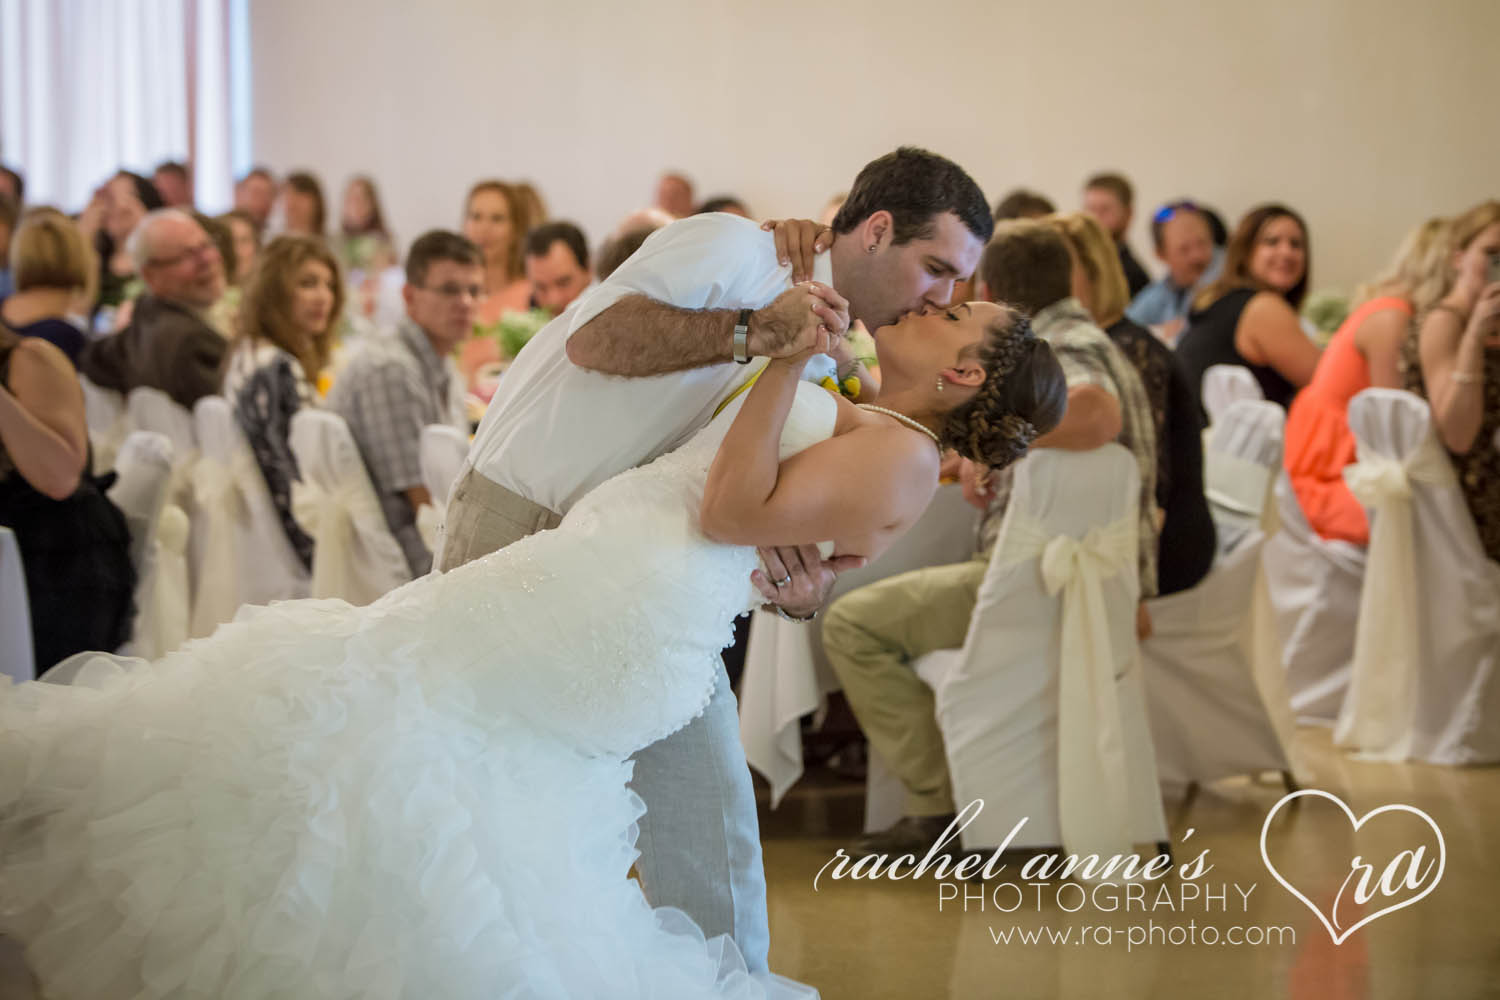 TKS-DUBOIS PA WEDDING-33.jpg